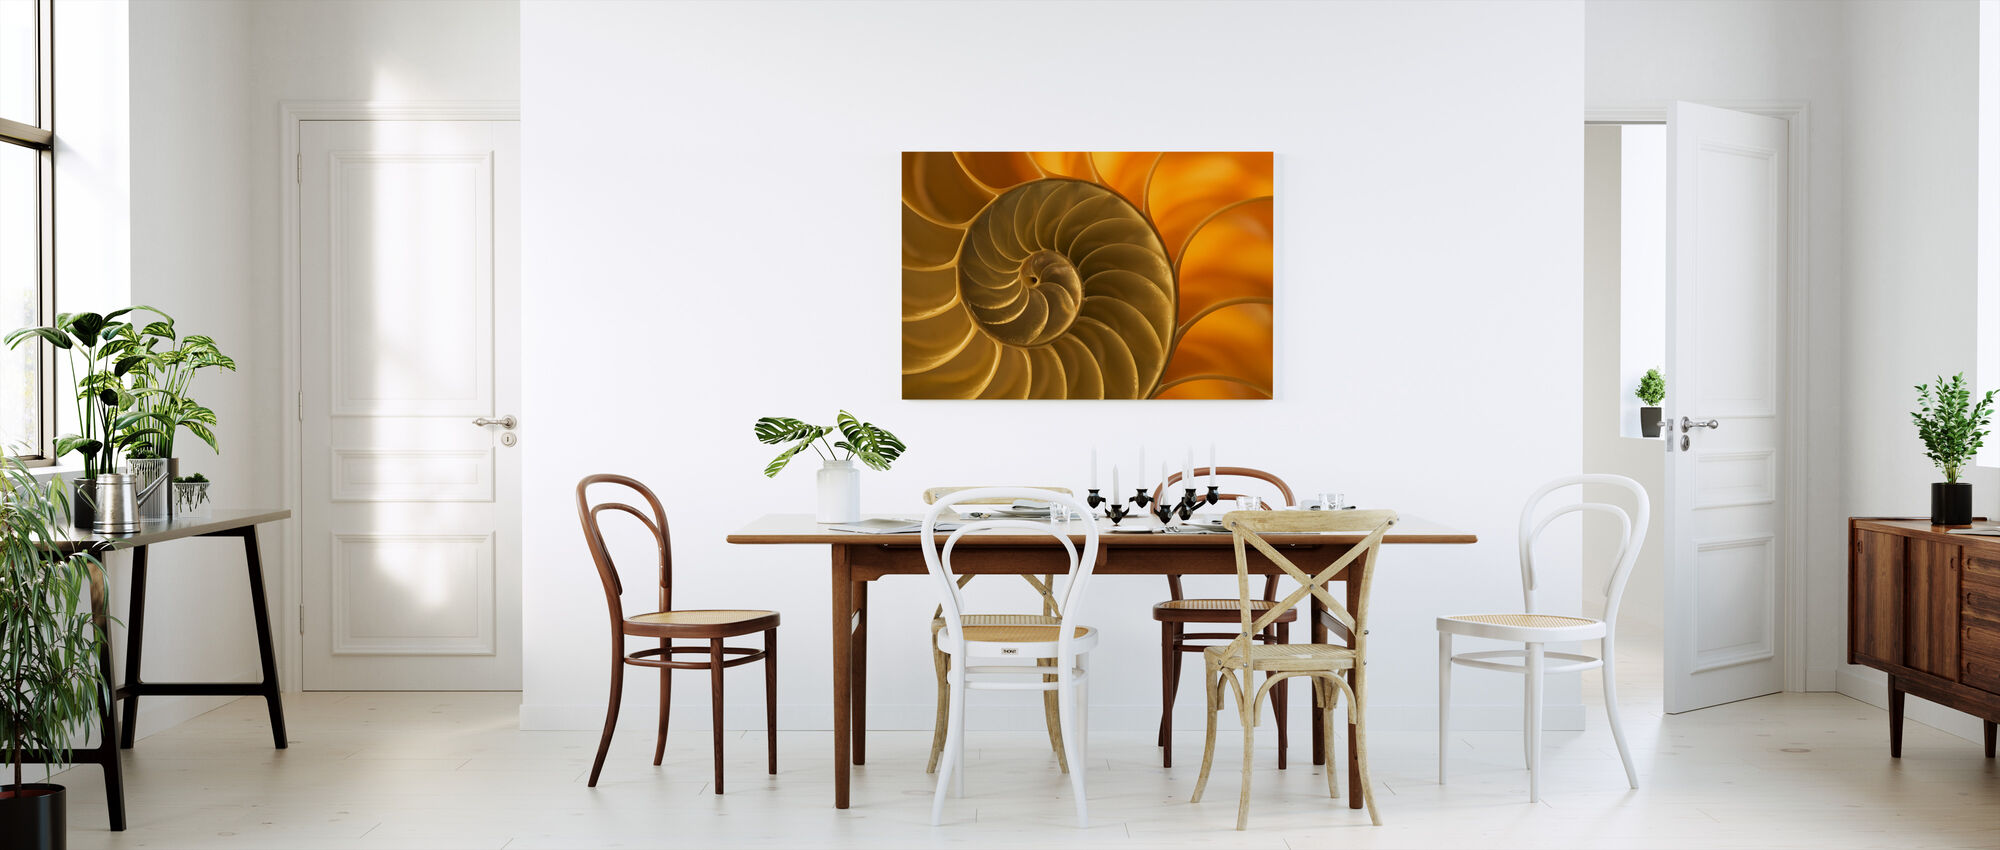 Nautilus Shell - Canvas print - Kitchen